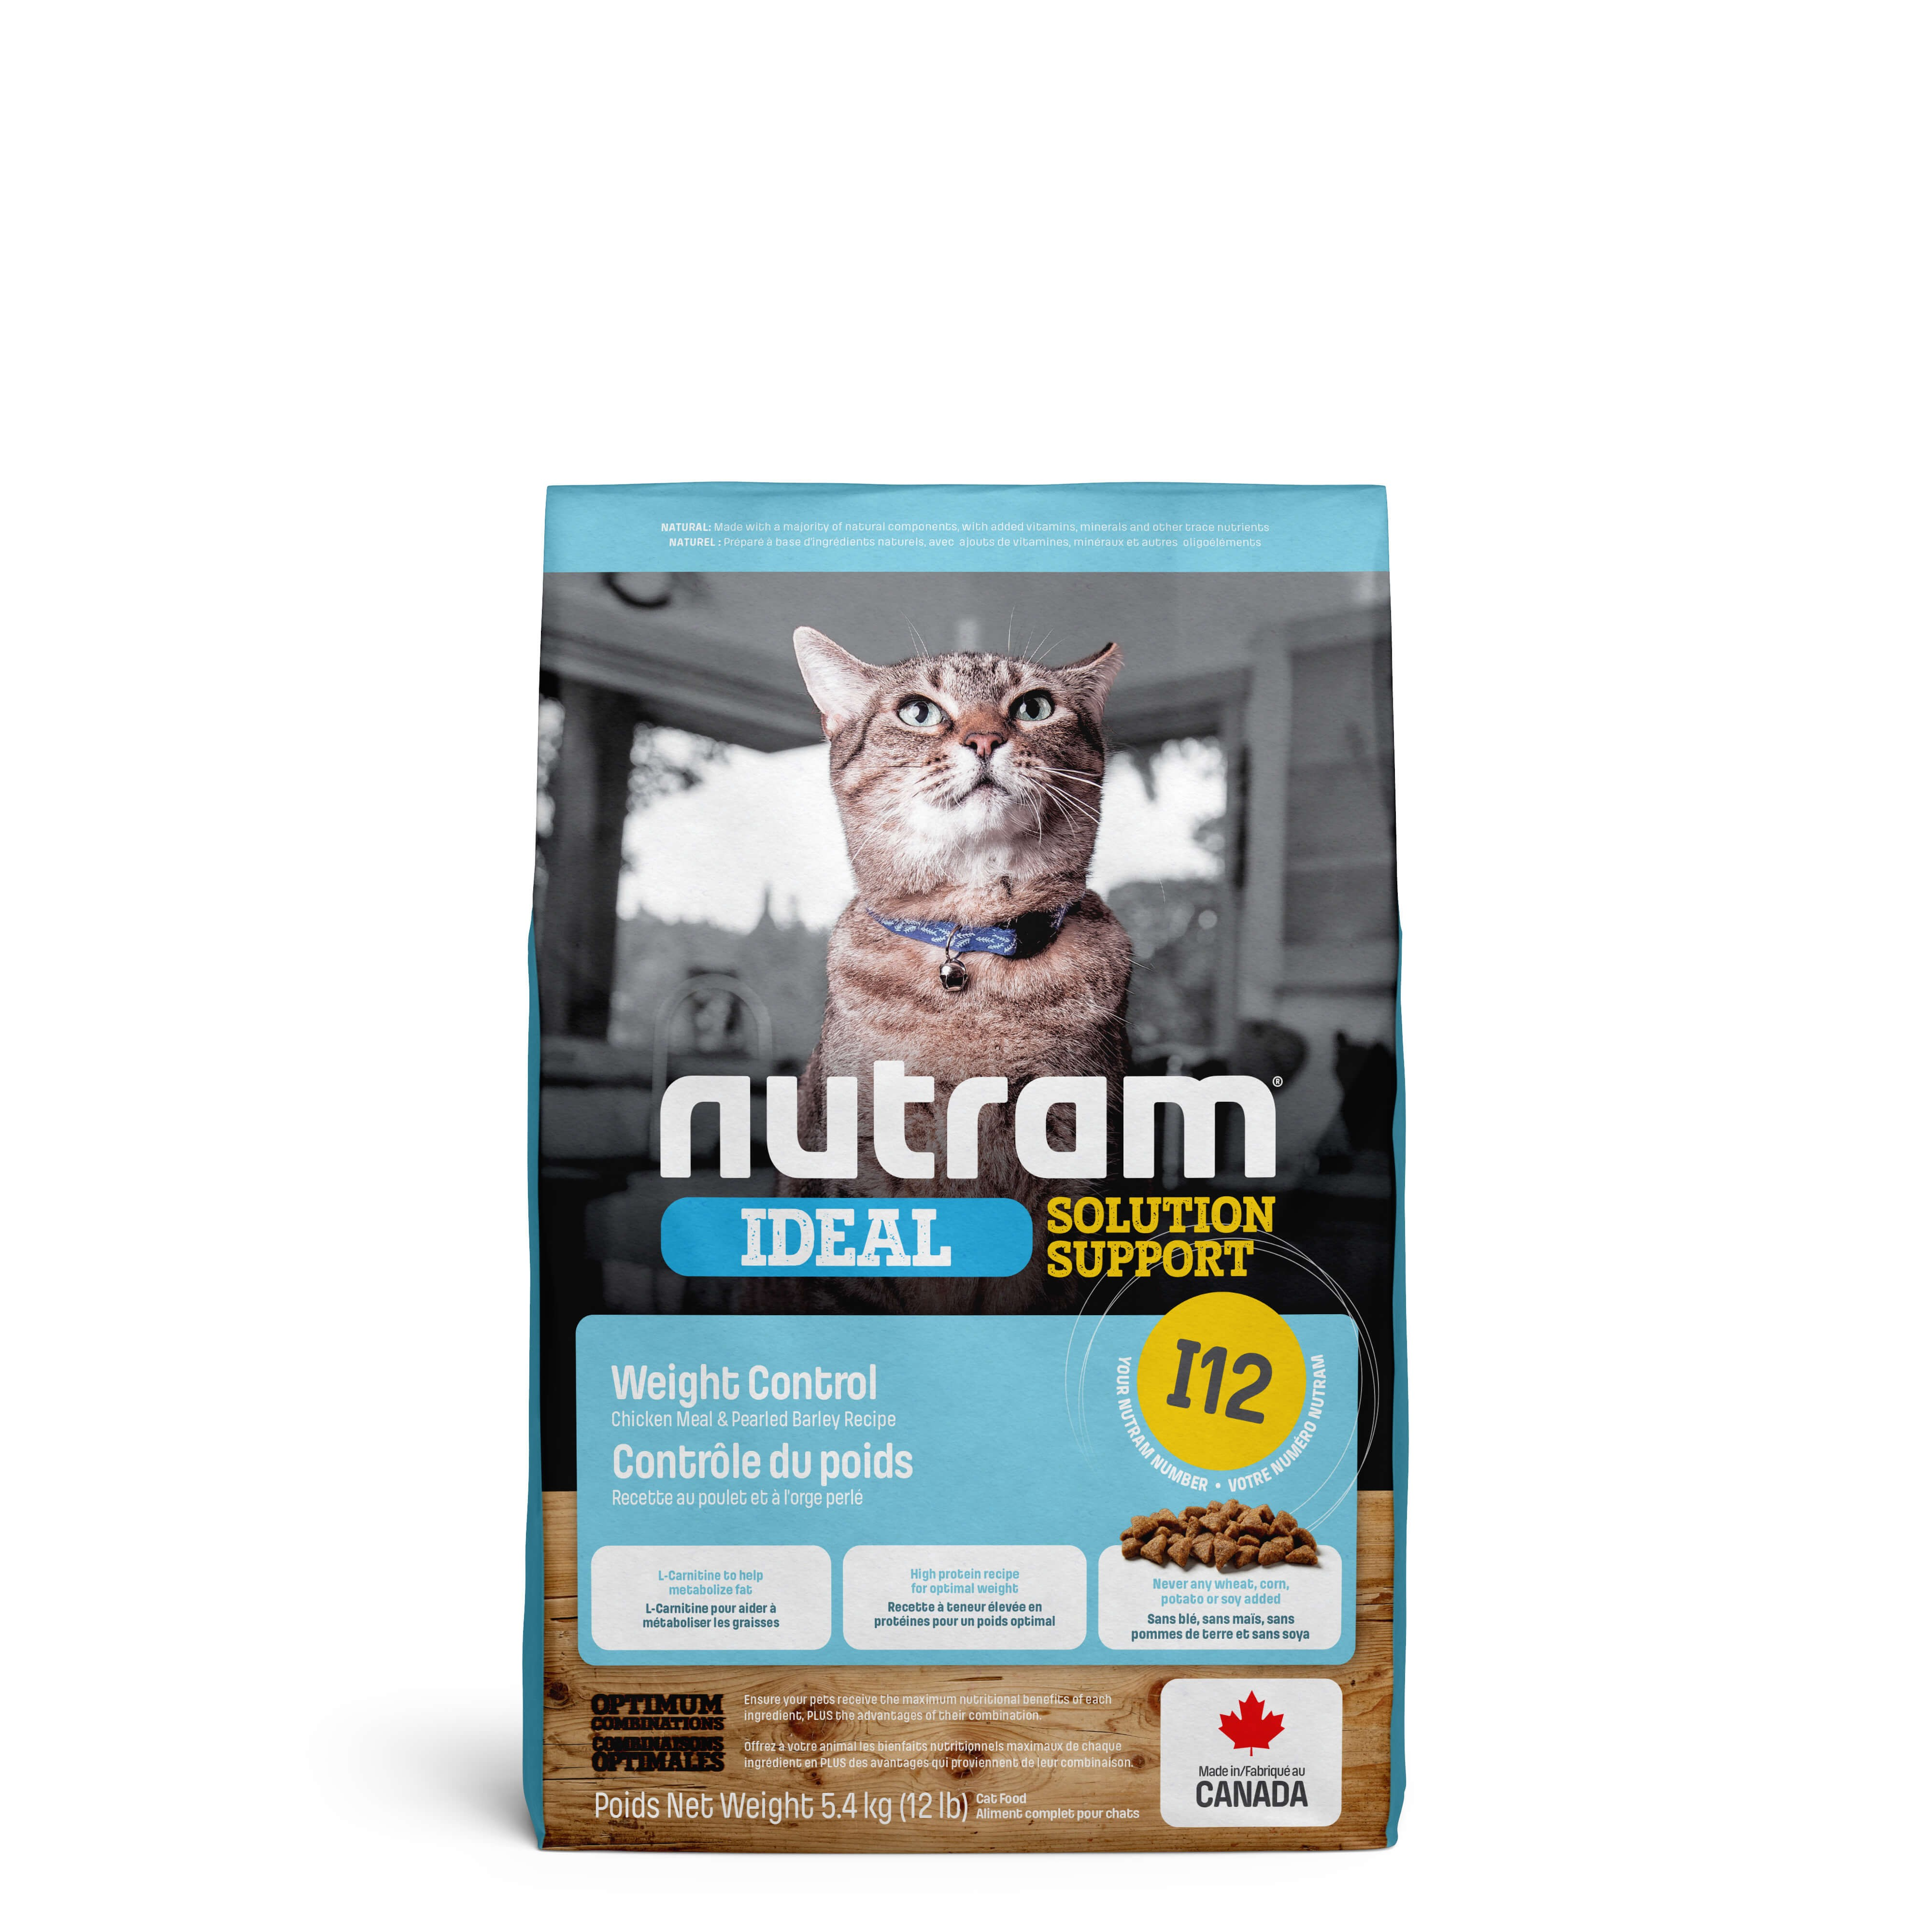 Nutram Ideal Solution Support Weight Control I12 kattefoder